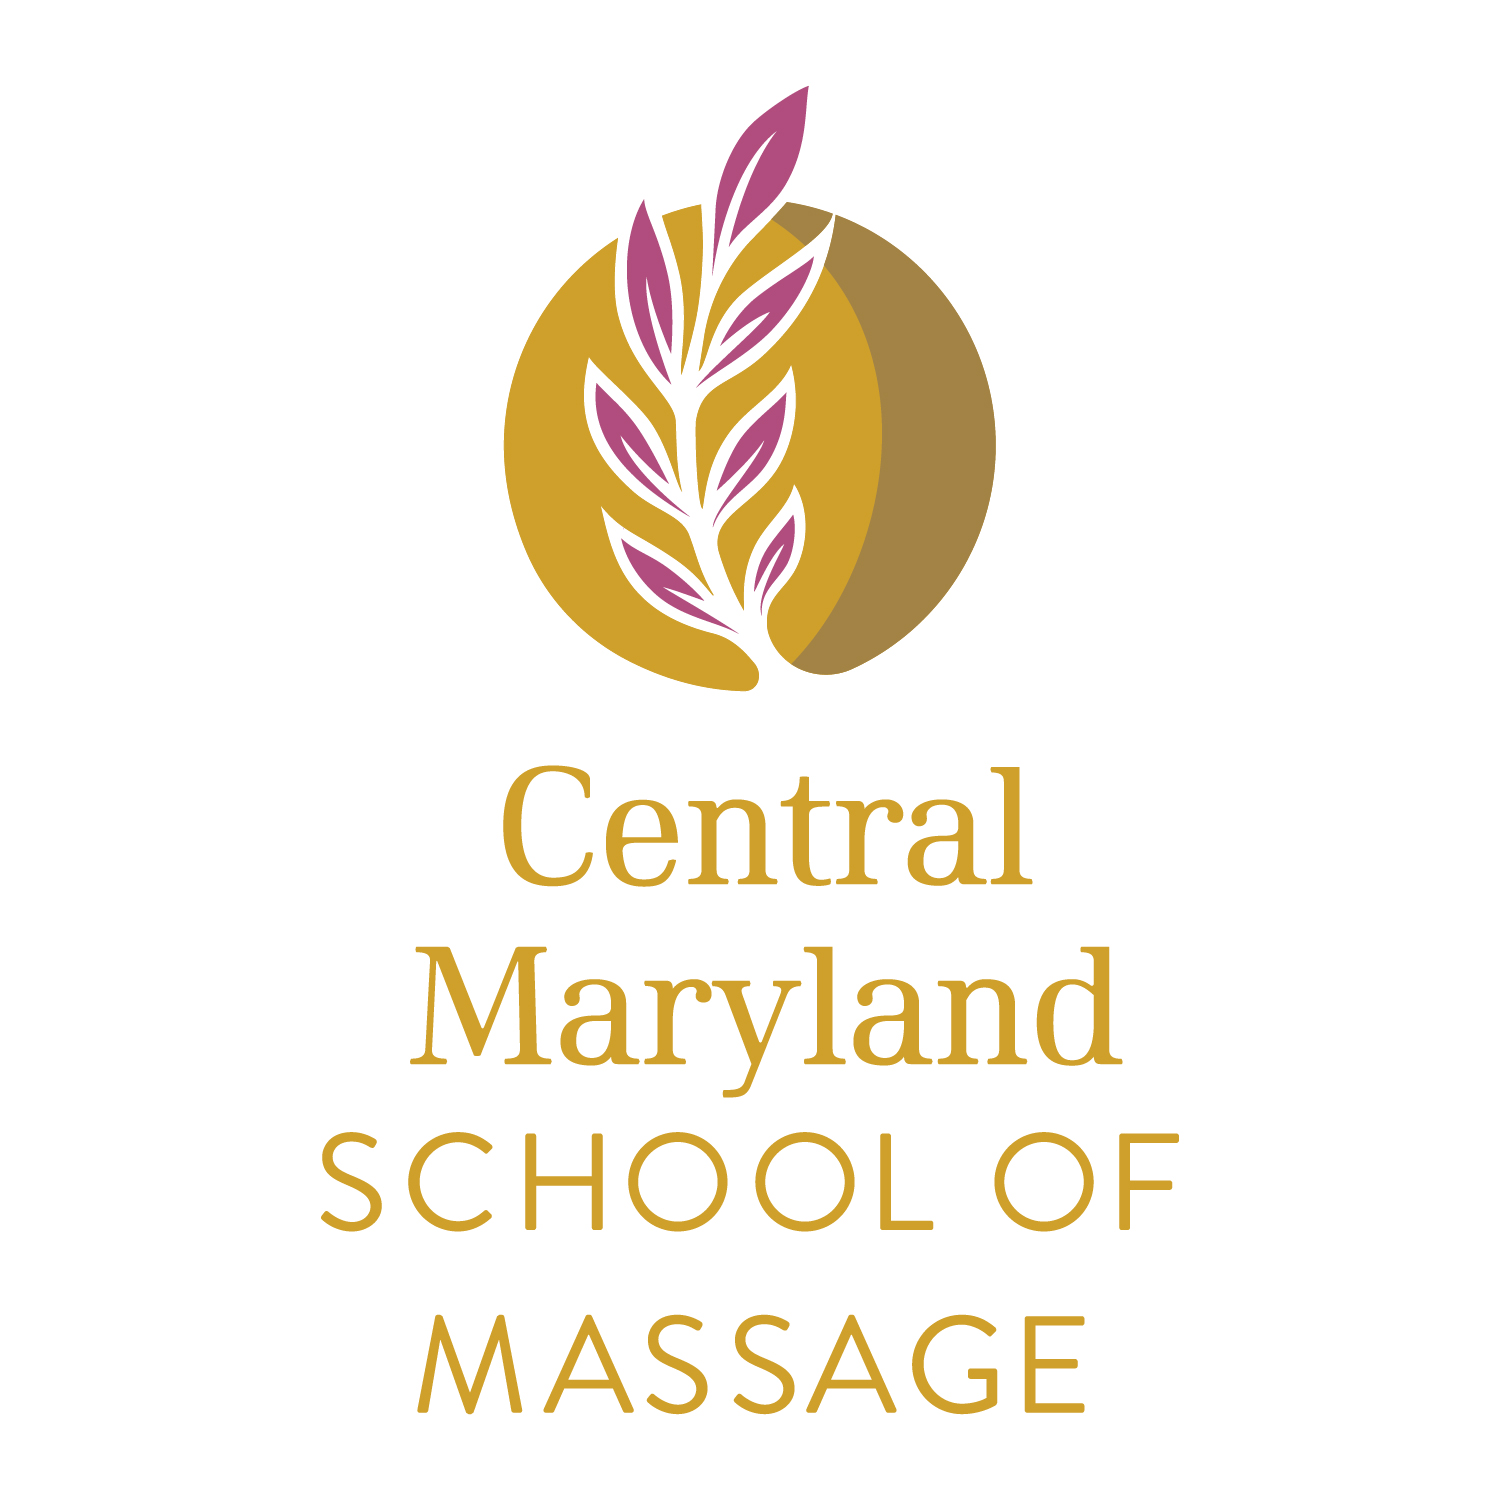 Central Maryland School of Massage Logo